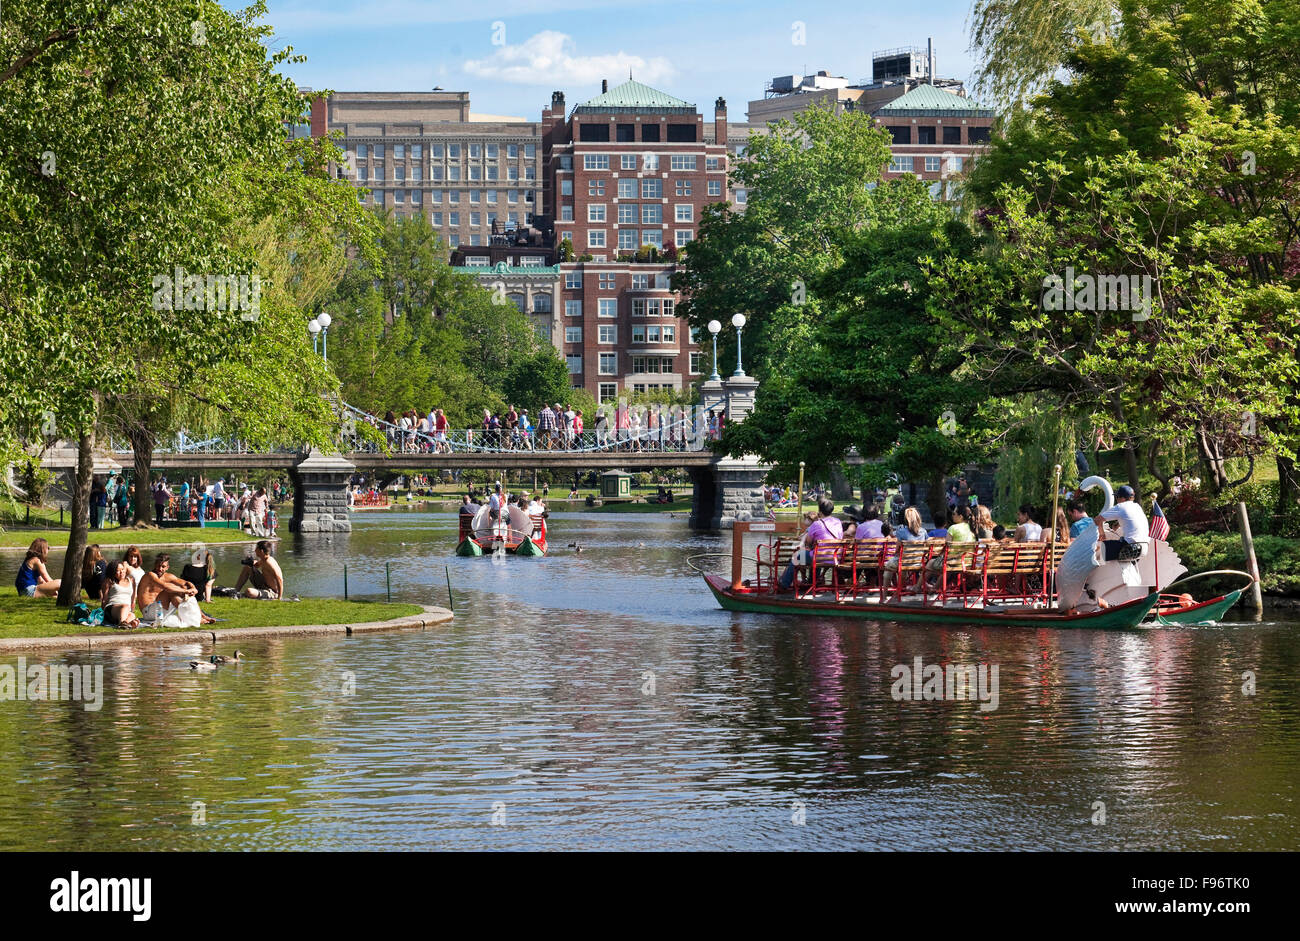 Artificial lake in the Boston's Public Garden commonly referred to as the Lagoon. The lake is the site of popular - Stock Image